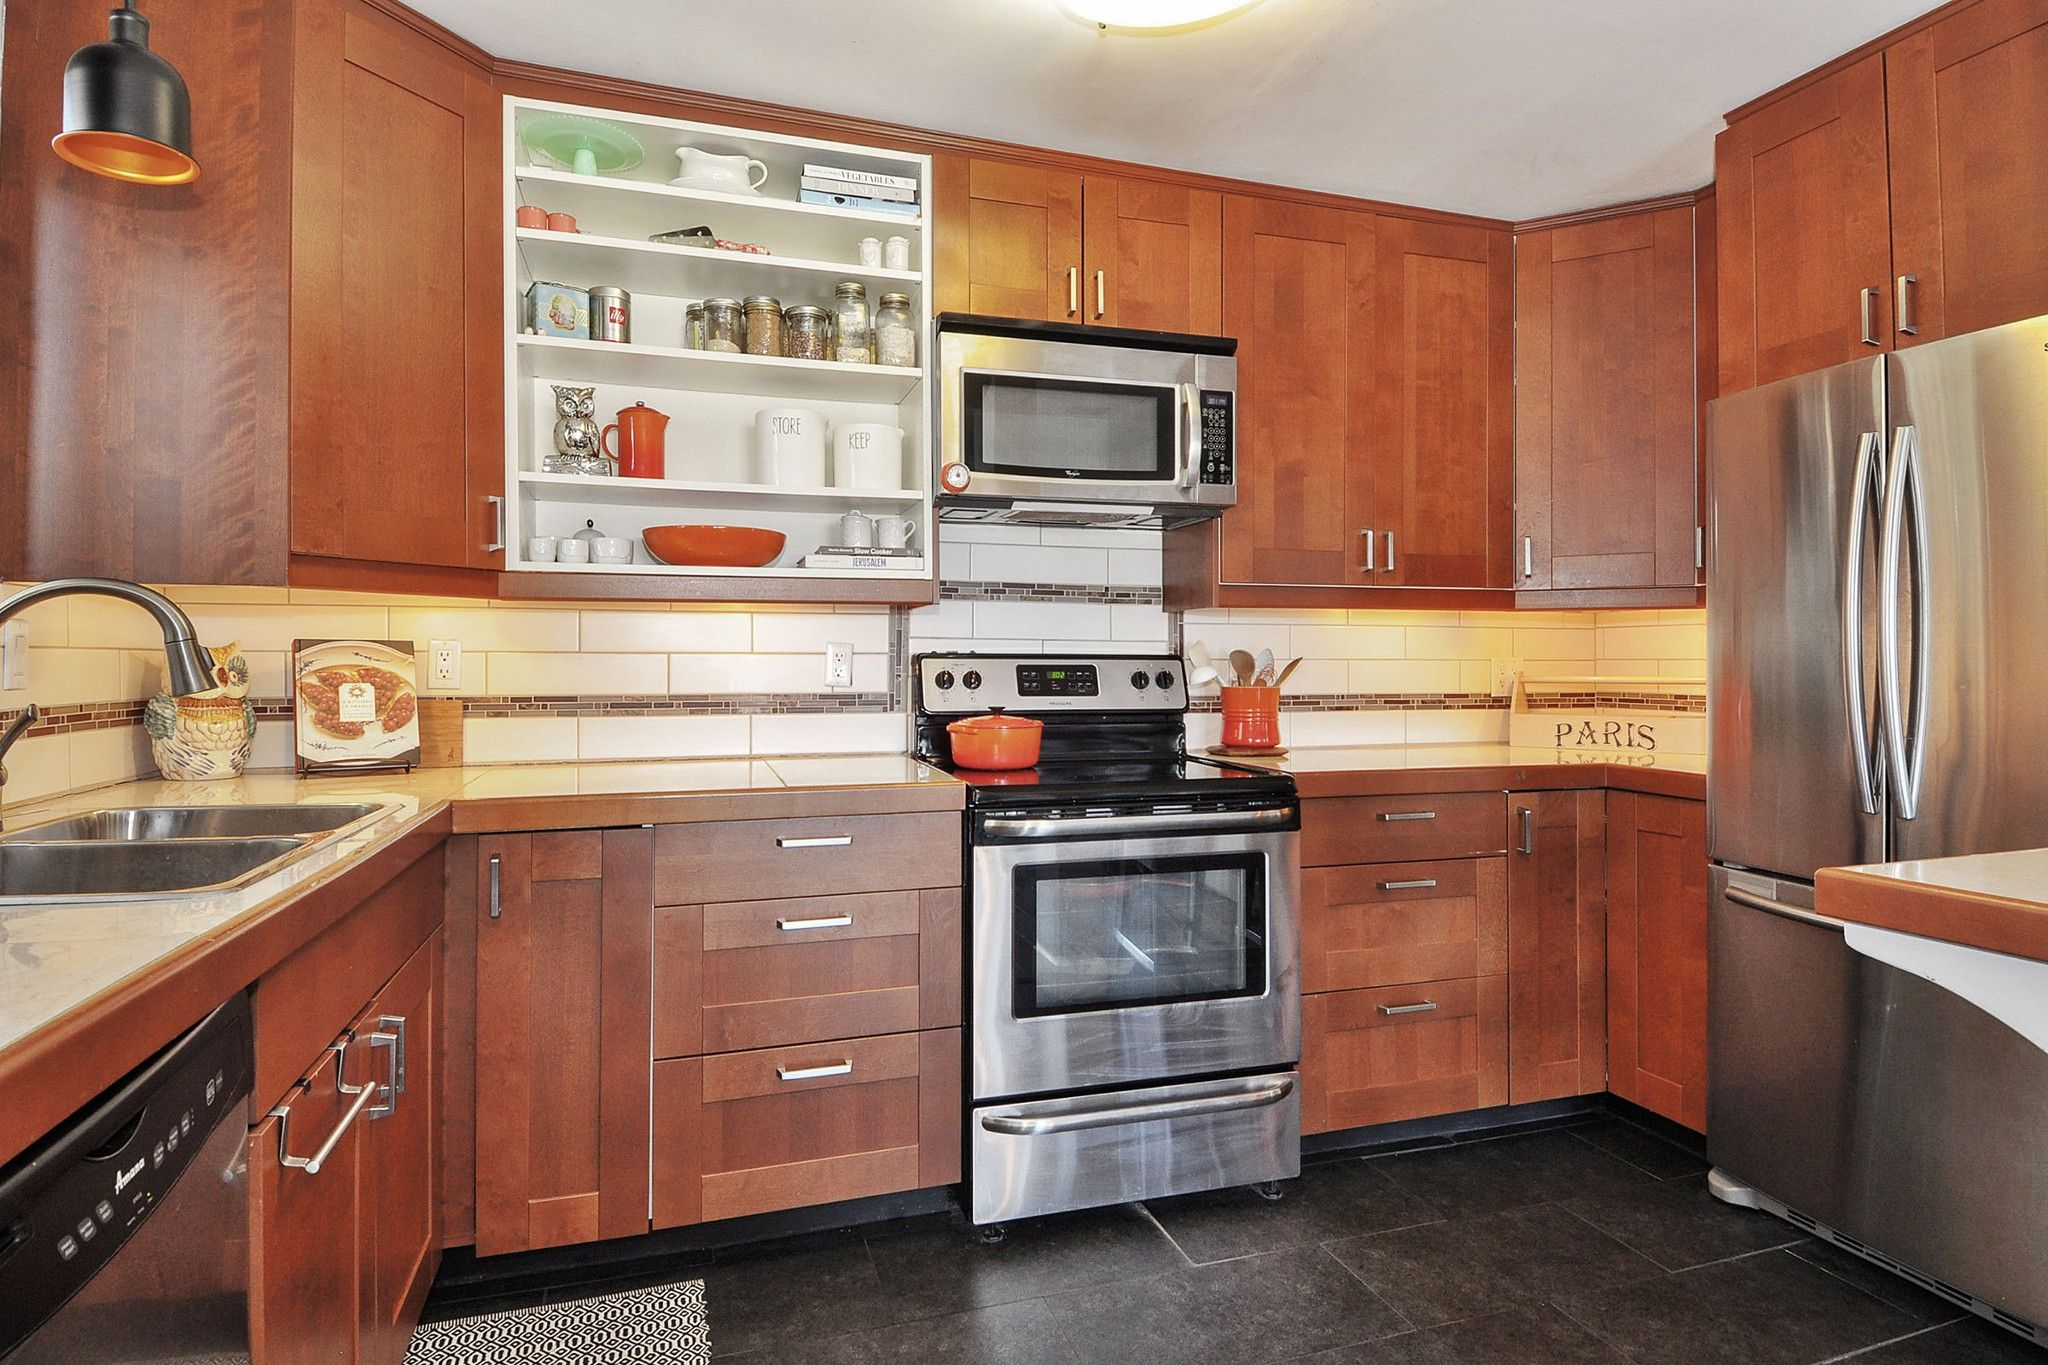 """Photo 8: Photos: 302 391 E 7TH Avenue in Vancouver: Mount Pleasant VE Condo for sale in """"OAKWOOD PARK"""" (Vancouver East)  : MLS®# R2352076"""